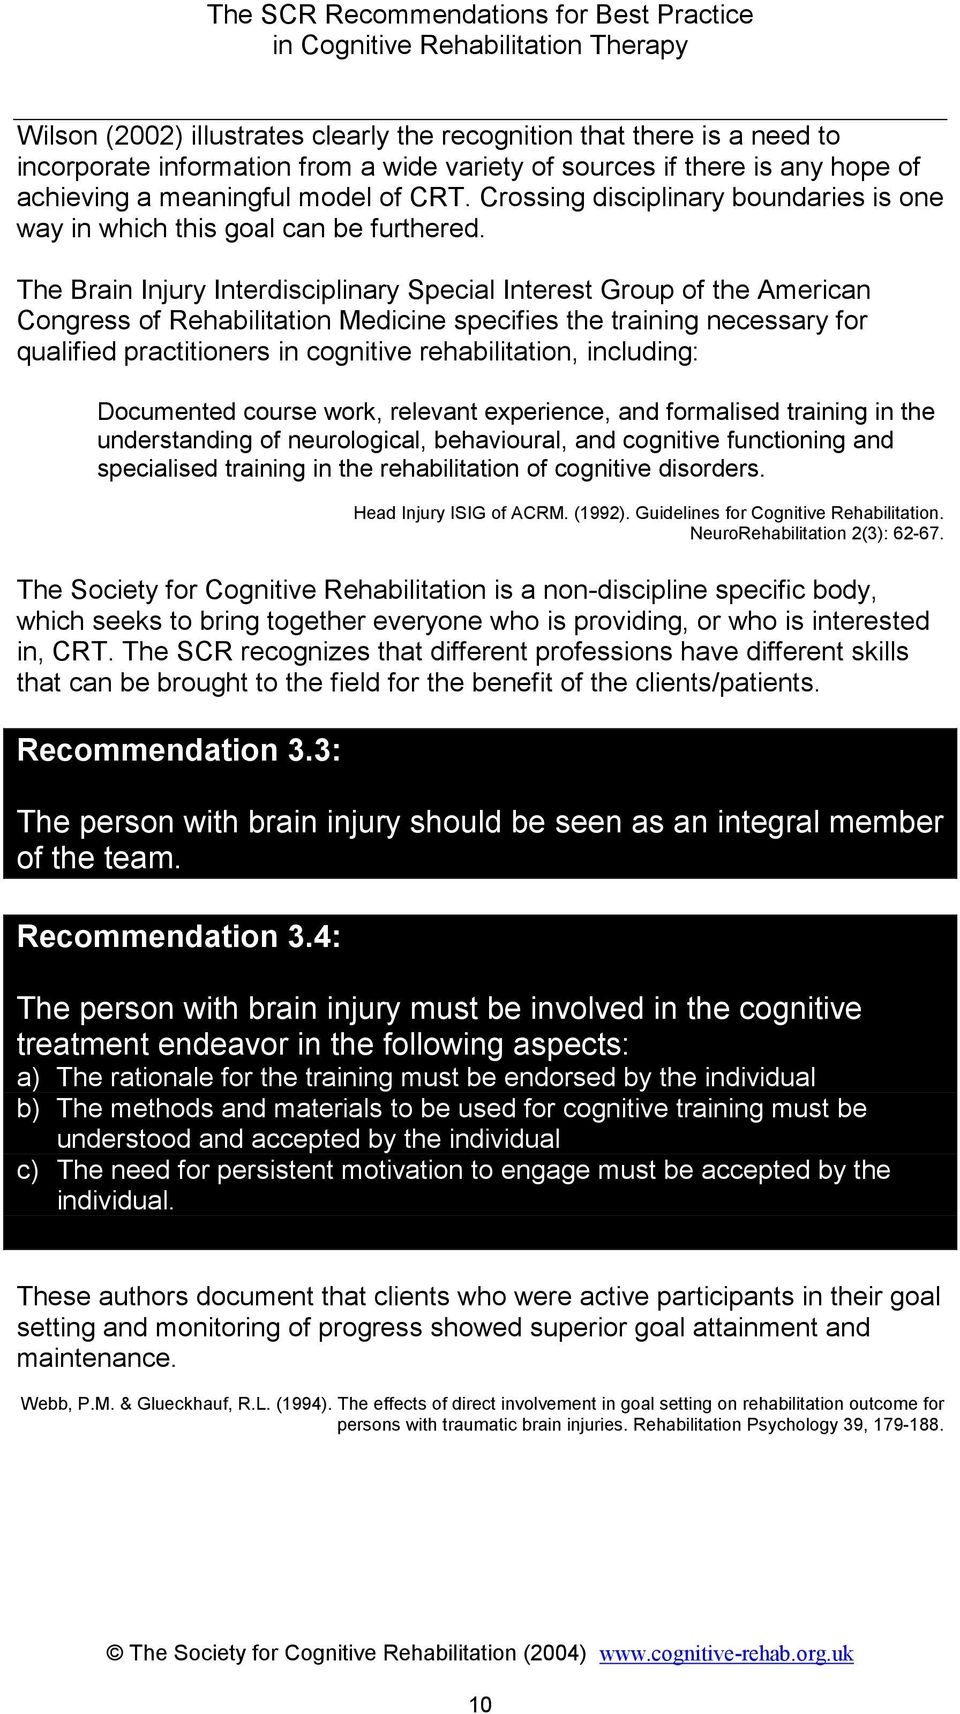 The Brain Injury Interdisciplinary Special Interest Group of the American Congress of Rehabilitation Medicine specifies the training necessary for qualified practitioners in cognitive rehabilitation,